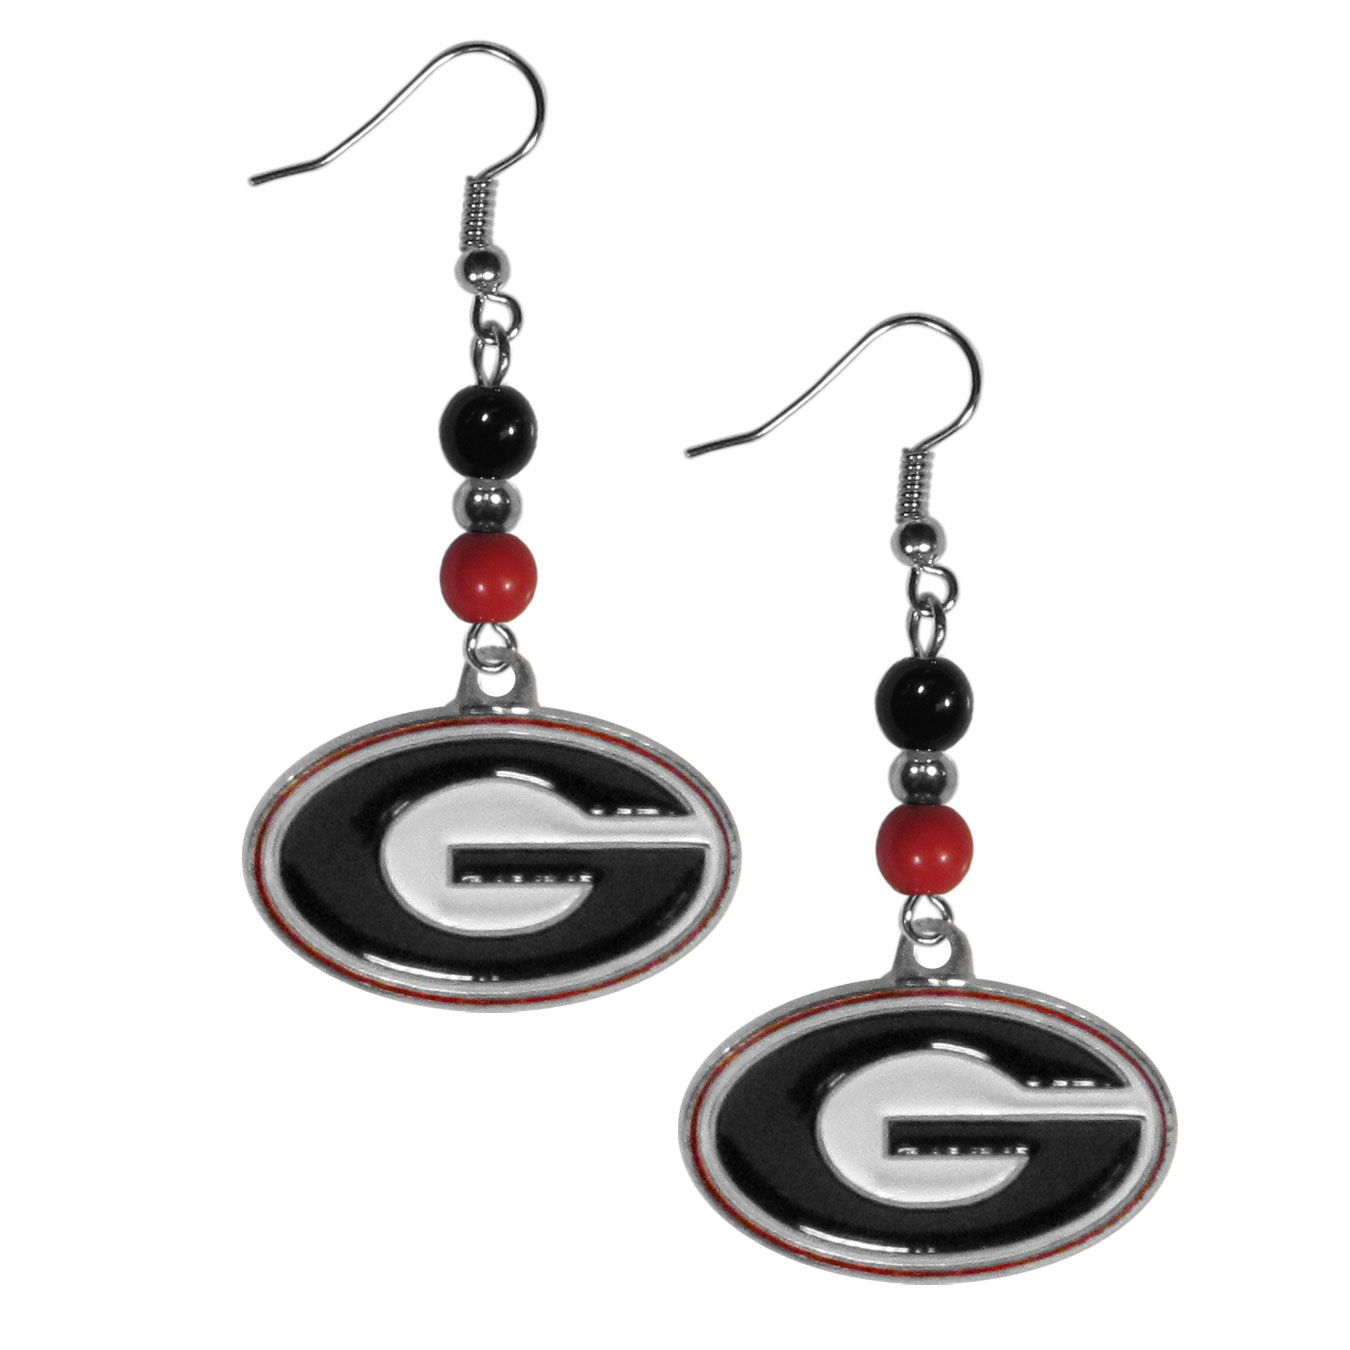 Georgia Bulldogs Fan Bead Dangle Earrings - Love your team, show it off with our Georgia Bulldogs bead dangle earrings! These super cute earrings hang approximately 2 inches and features 2 team colored beads and a high polish team charm. A must have for game day!